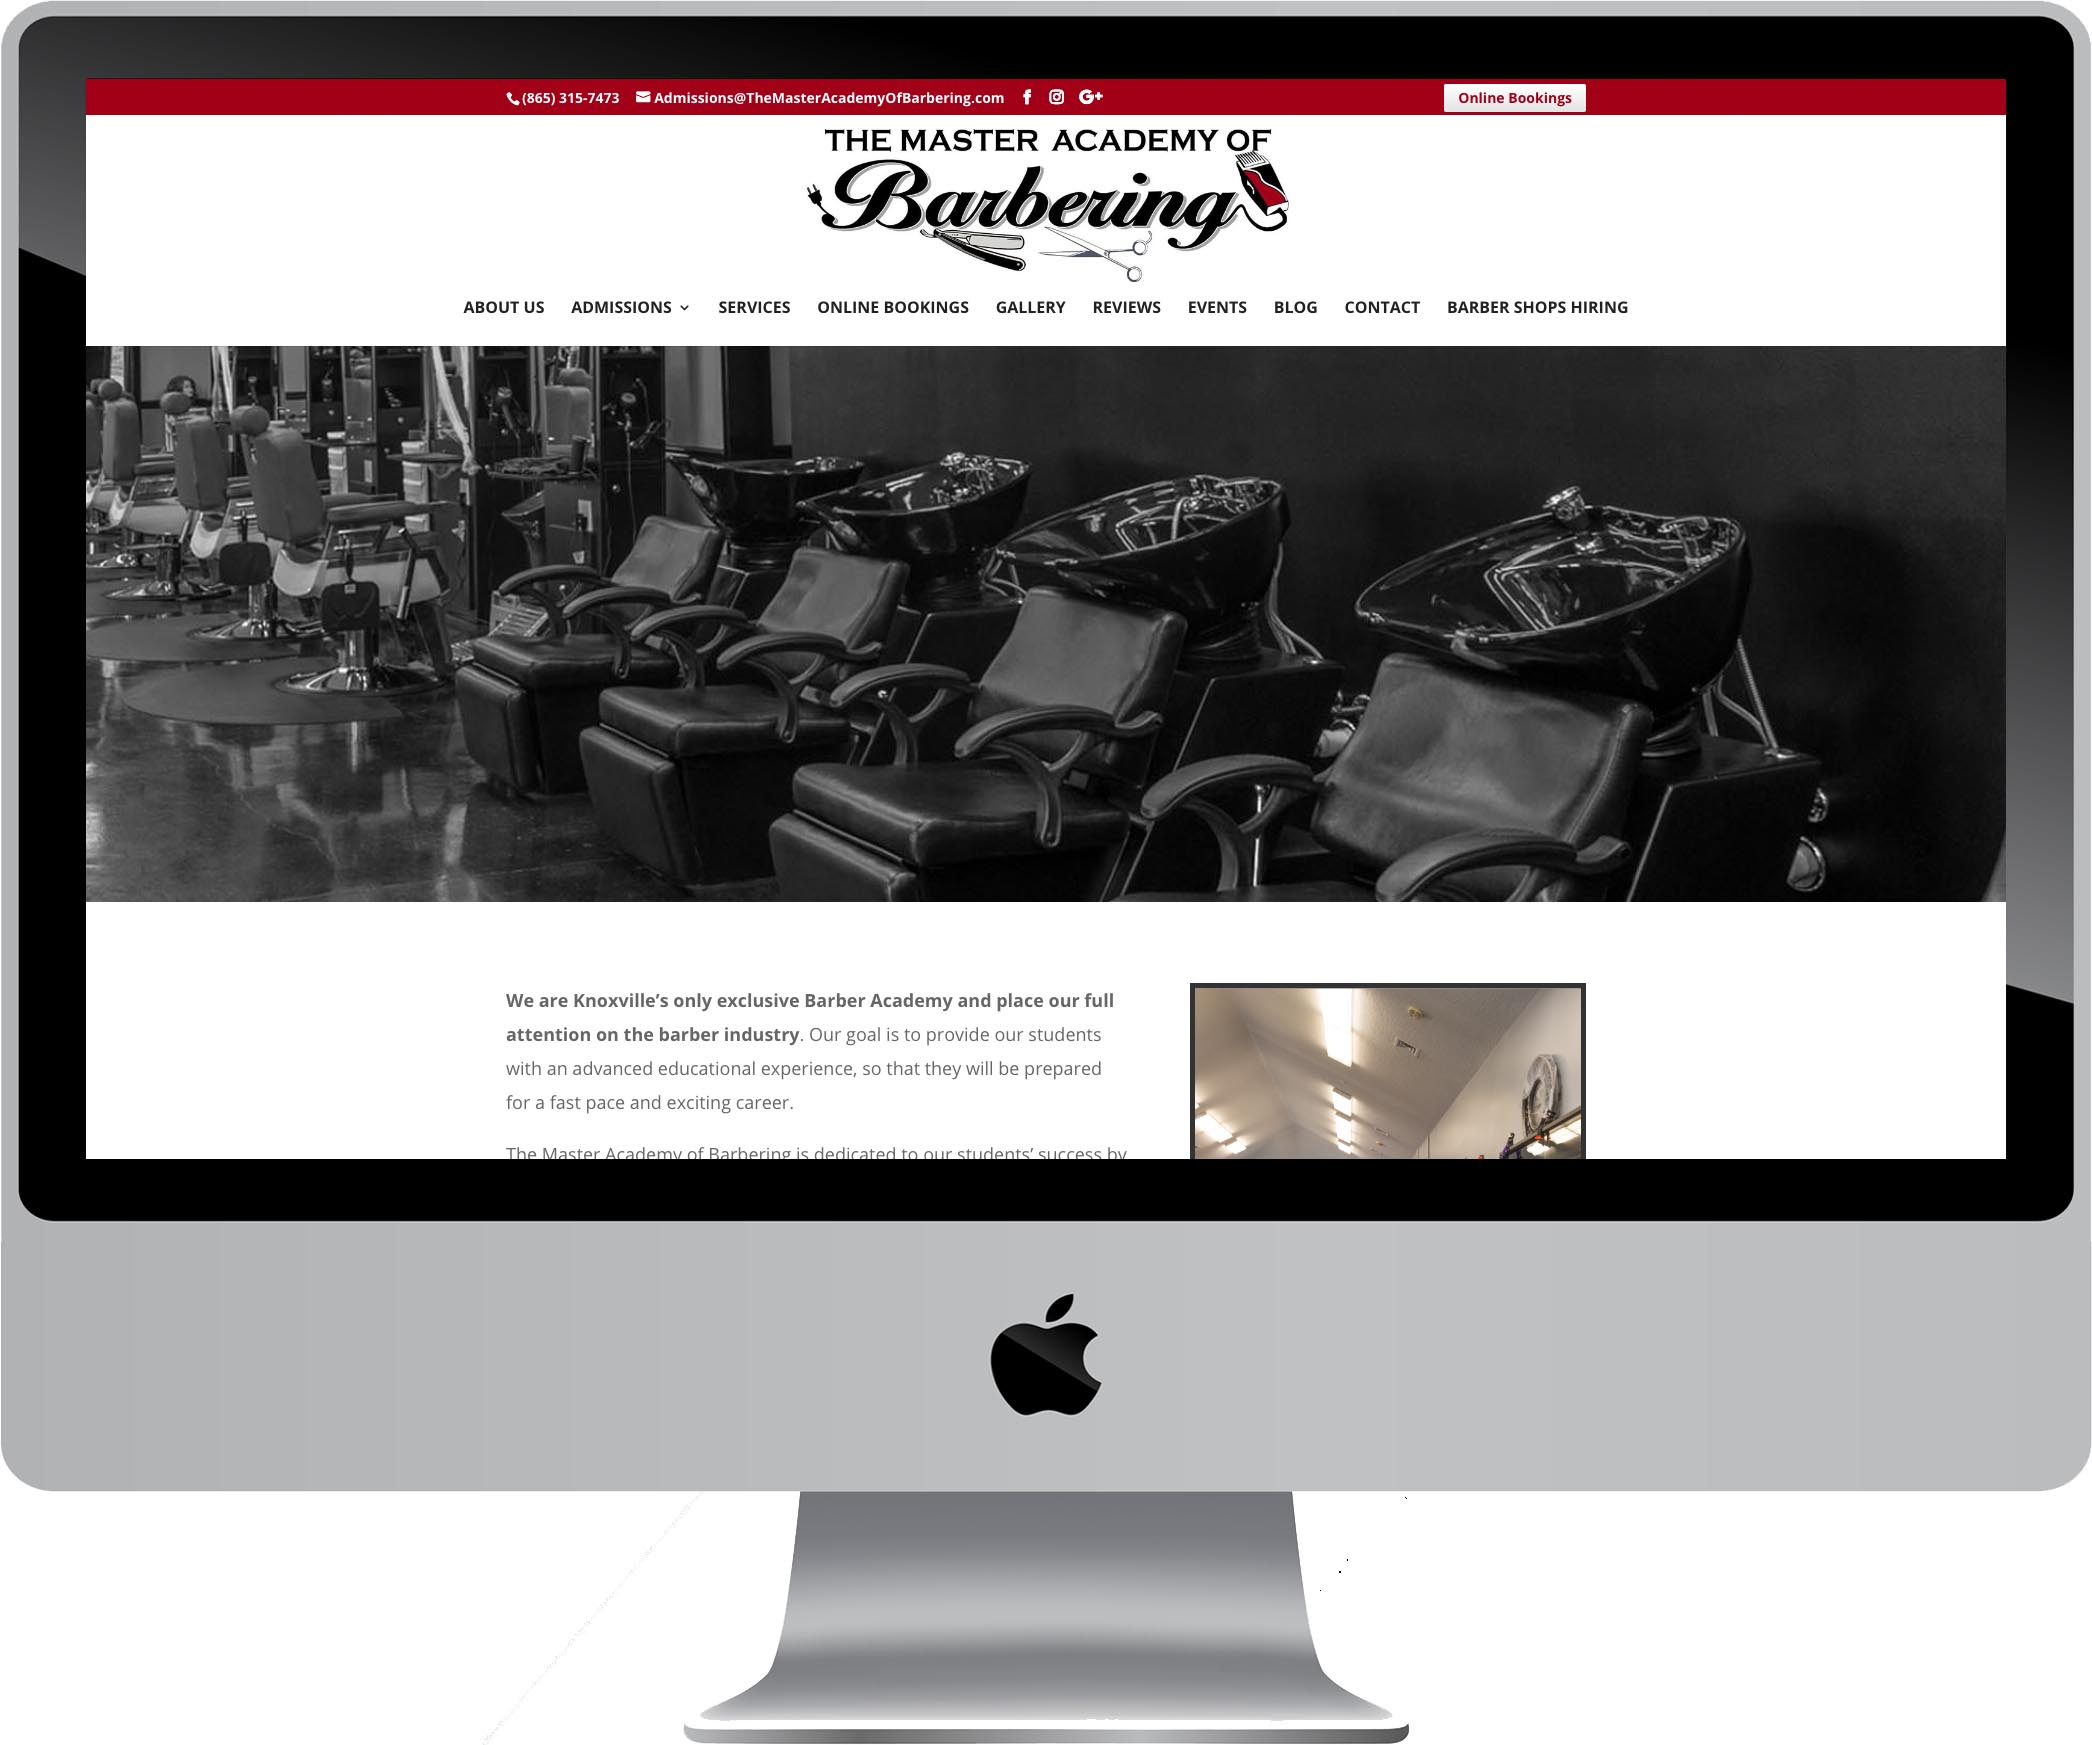 Master Academy of Barbering Website Design